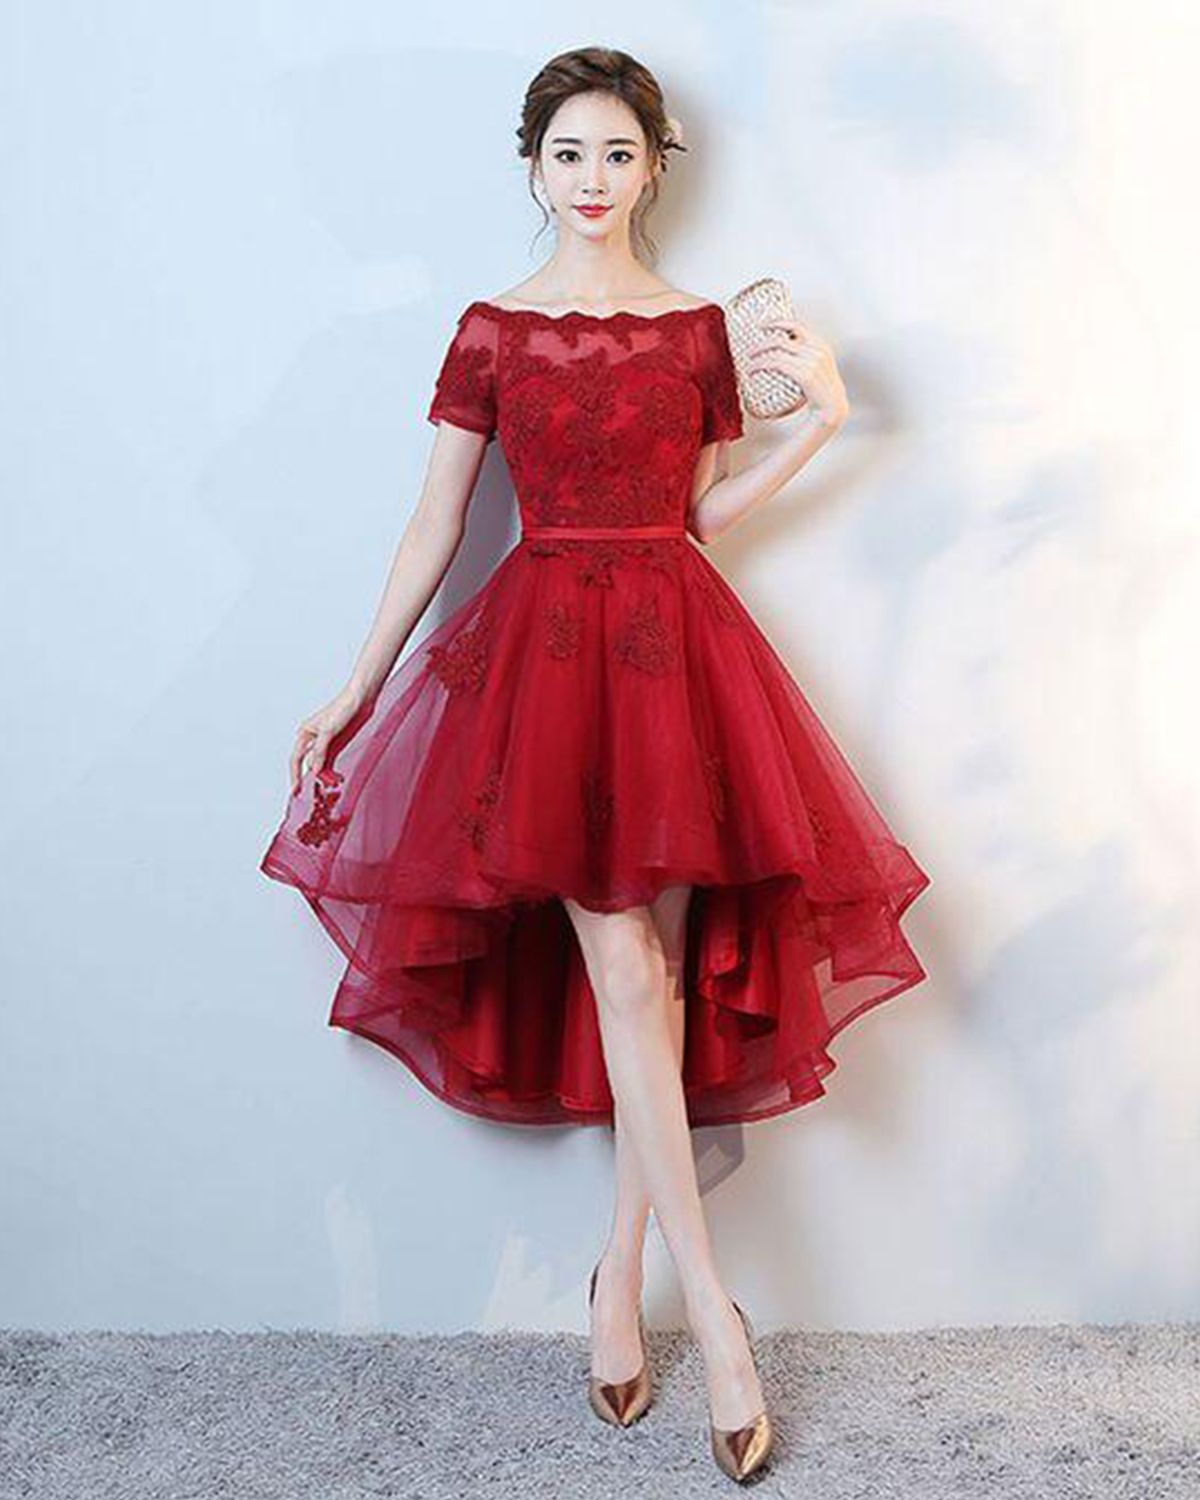 Red tulle off shoulder high low lace appliqués party dress ...Red High Low Prom Dresses 2013